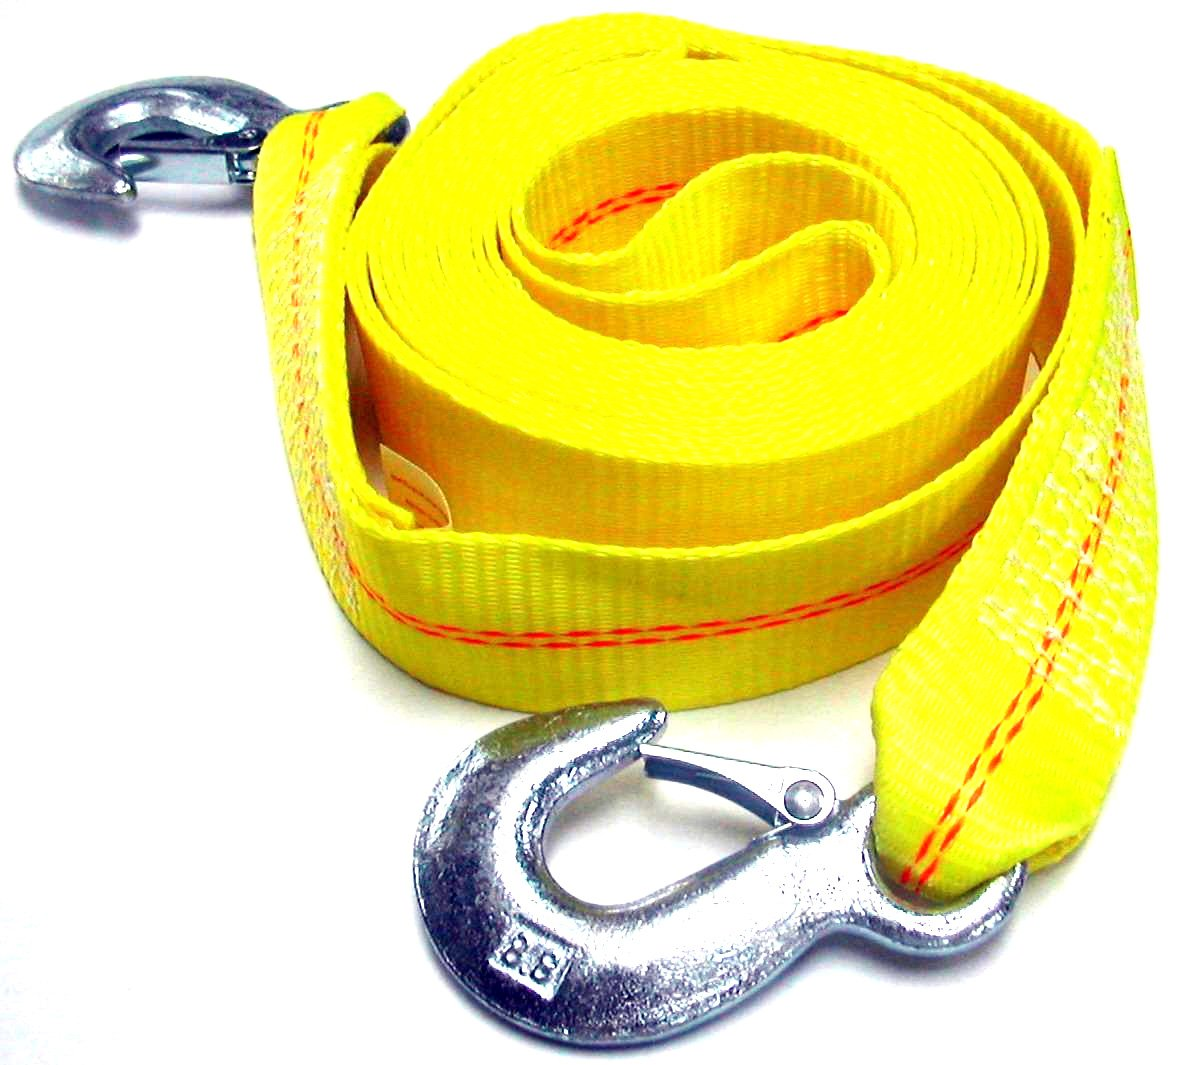 Hardware Factory Store HFS (R) 2'' X 30', 4.5 Ton 2 Inch X 30 Ft. Polyester Tow Strap Rope 2 Hooks 10,000lb Towing Recovery by Hardware Factory Store